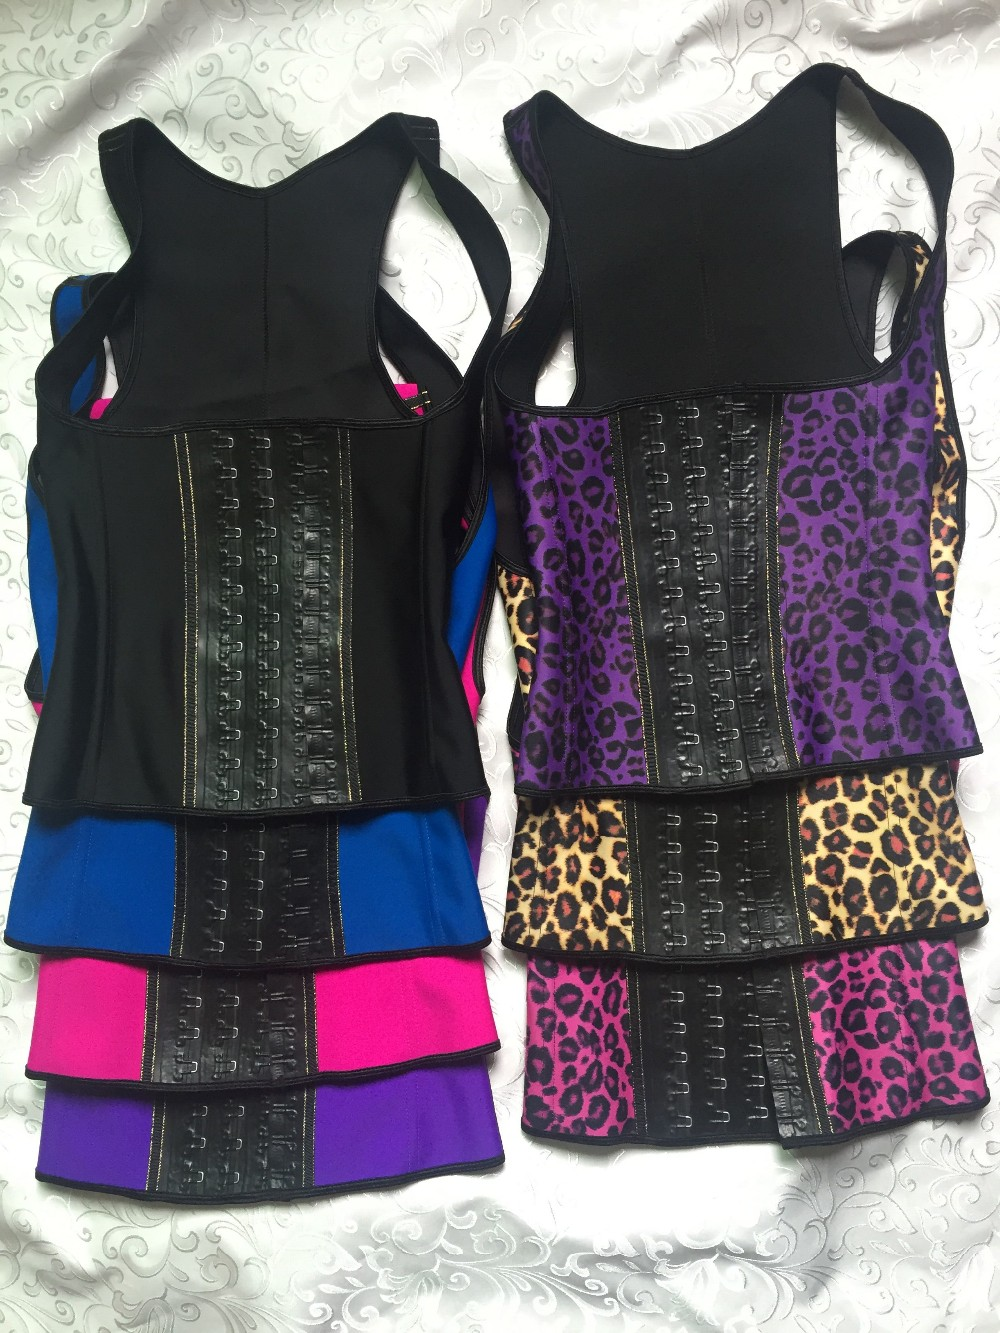 47dd1e5c1 Hot Waist Training Corsets Female Body Shaper Vest Waist Trainer Corsets  Slimming Belt Latex Waist Cincher